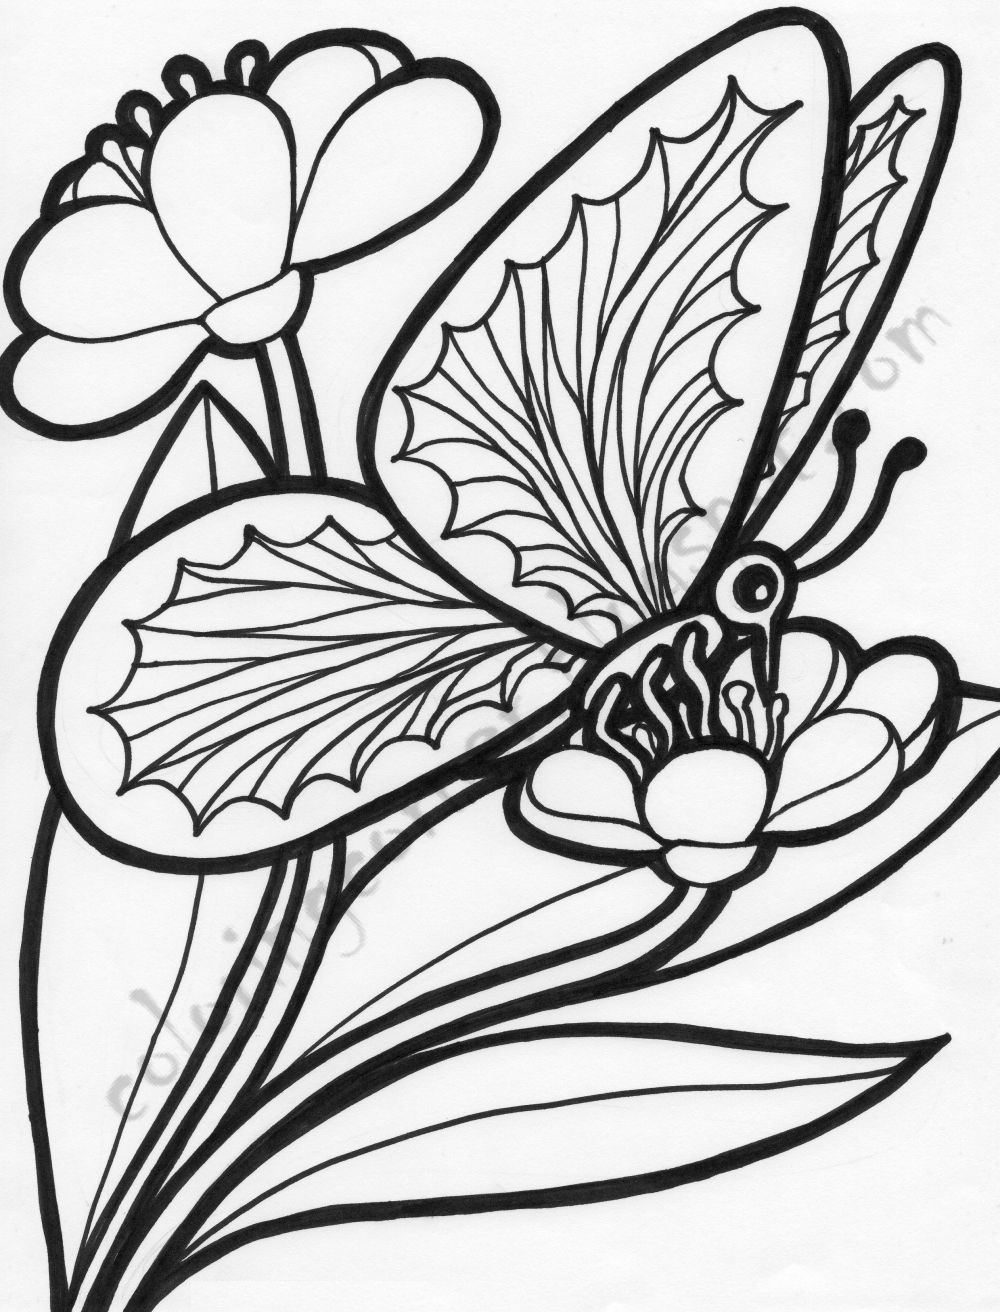 coloring images of butterfly butterfly coloring pages coloring of images butterfly